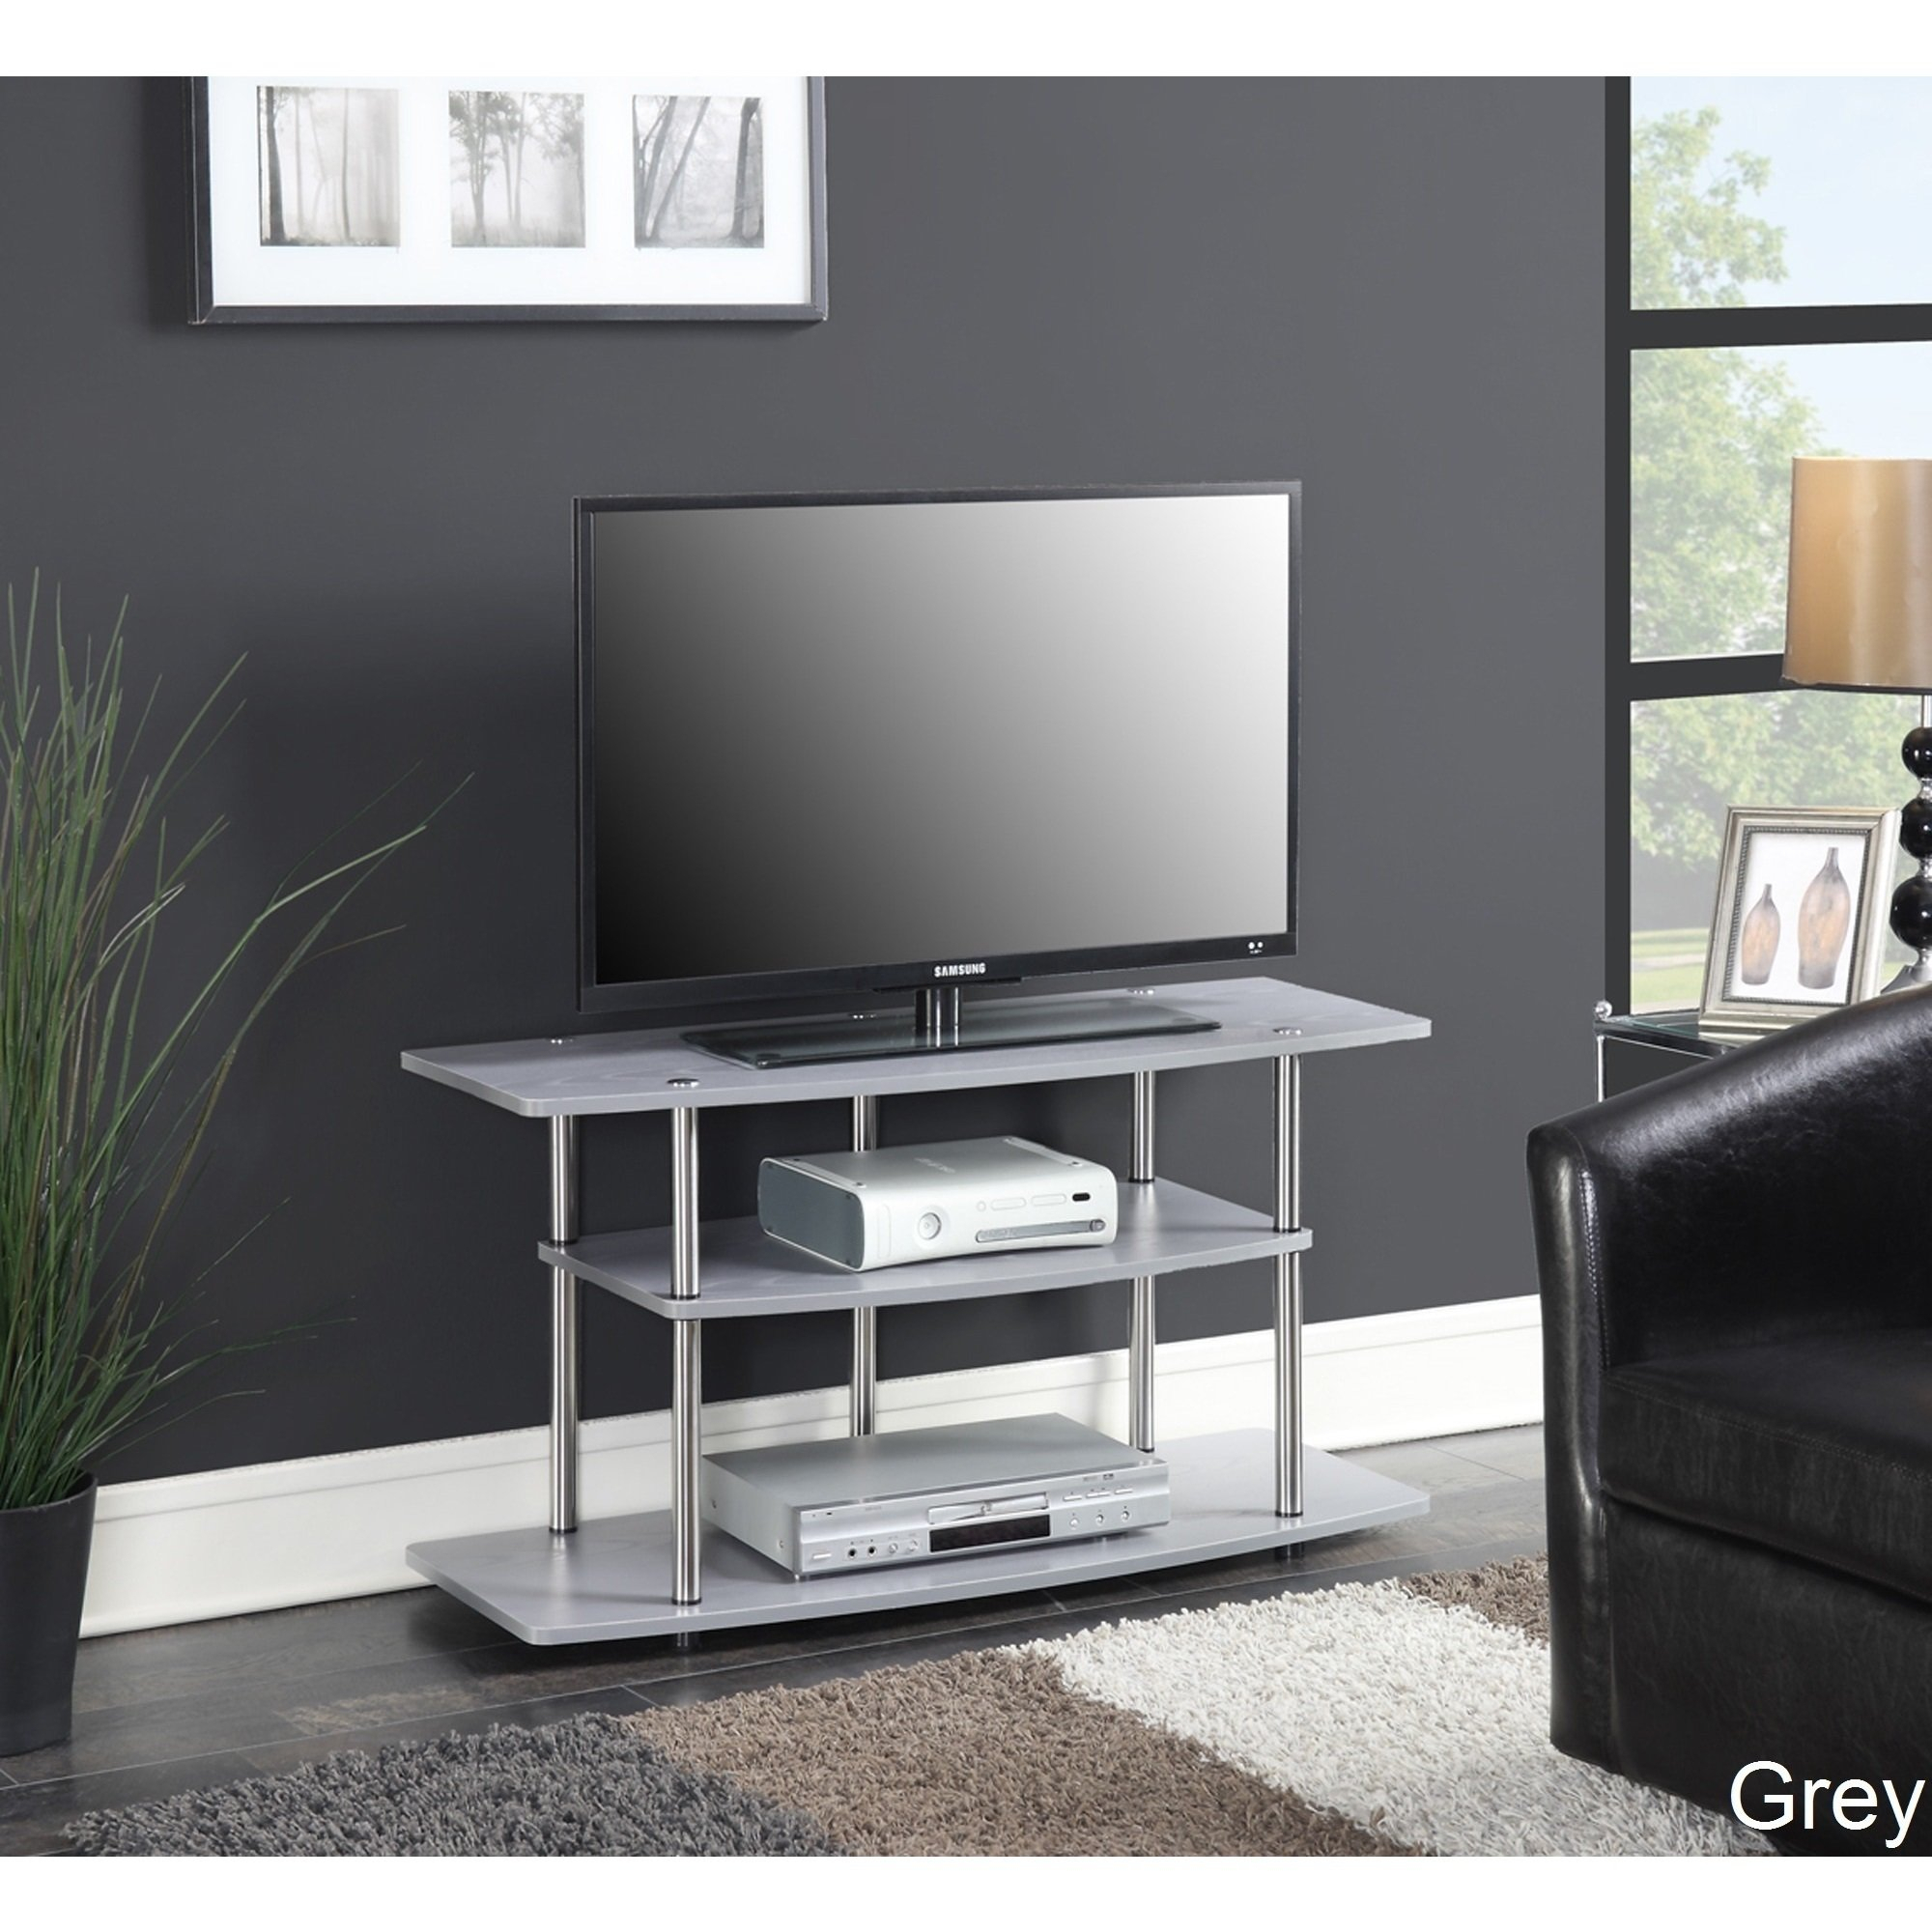 Buy Grey, 42 - 60 Inches Tv Stands & Entertainment Centers Online At for Rowan 74 Inch Tv Stands (Image 5 of 30)